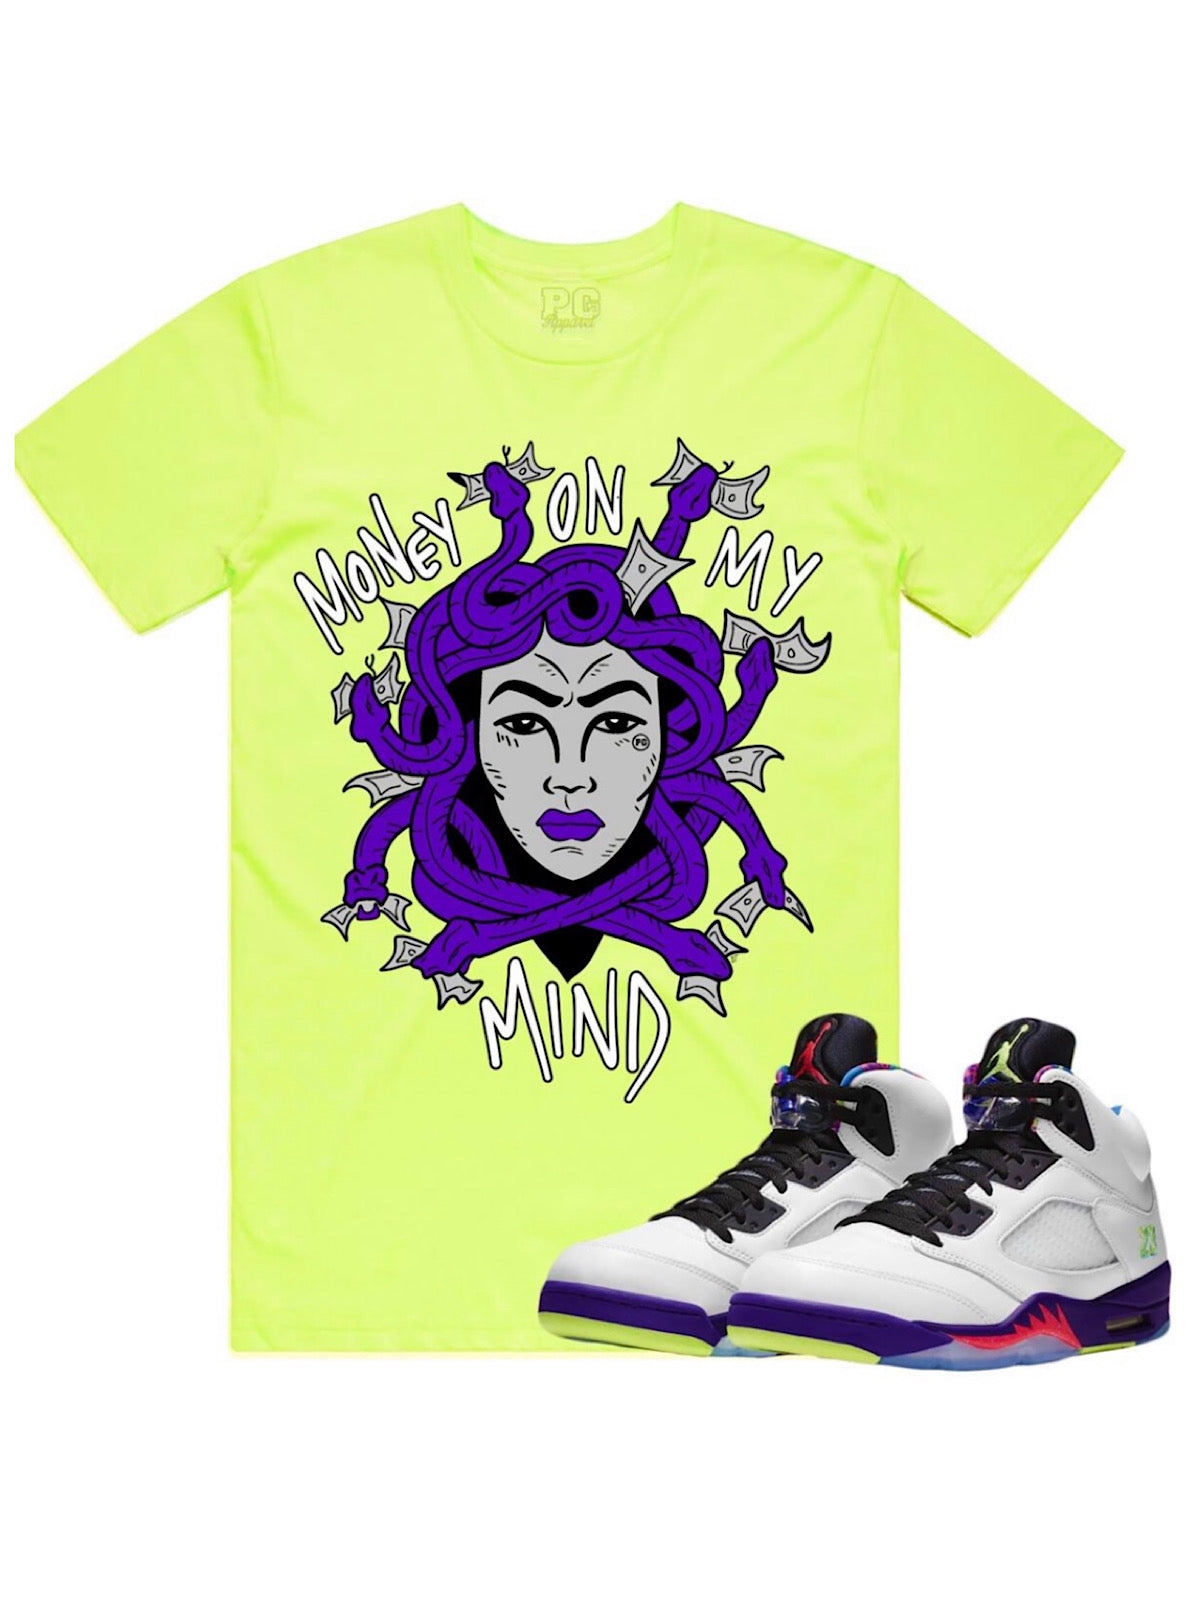 PG Apparel T-Shirt - Medusa - Neon with Purple